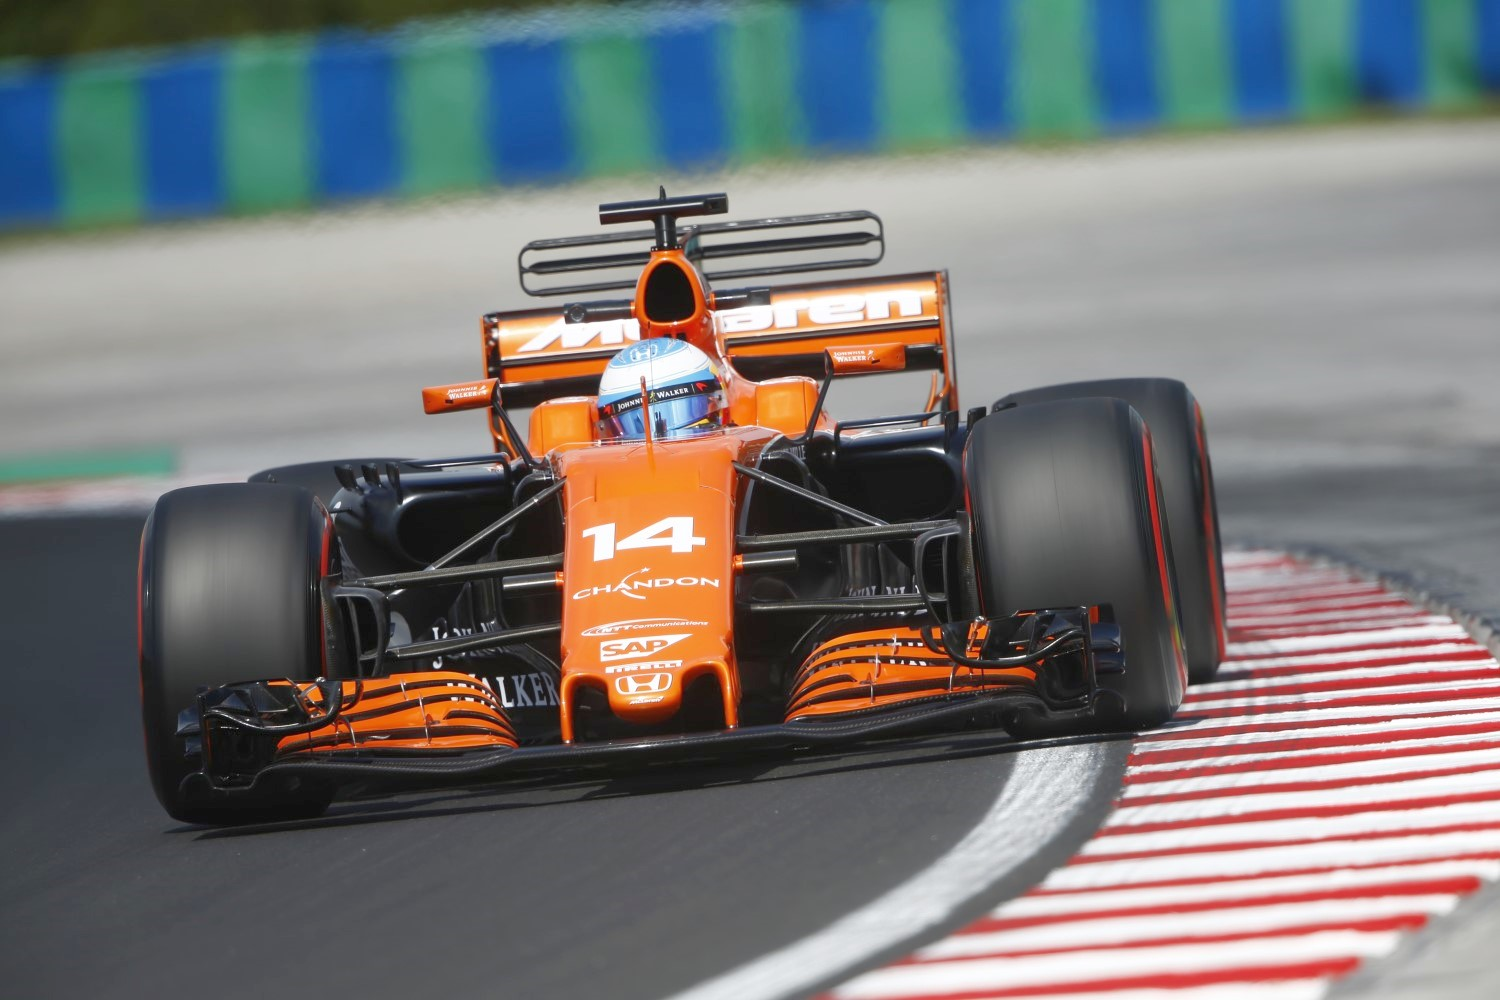 The McLaren chassis is good, and with a Mercedes or Ferrari engine it would win races